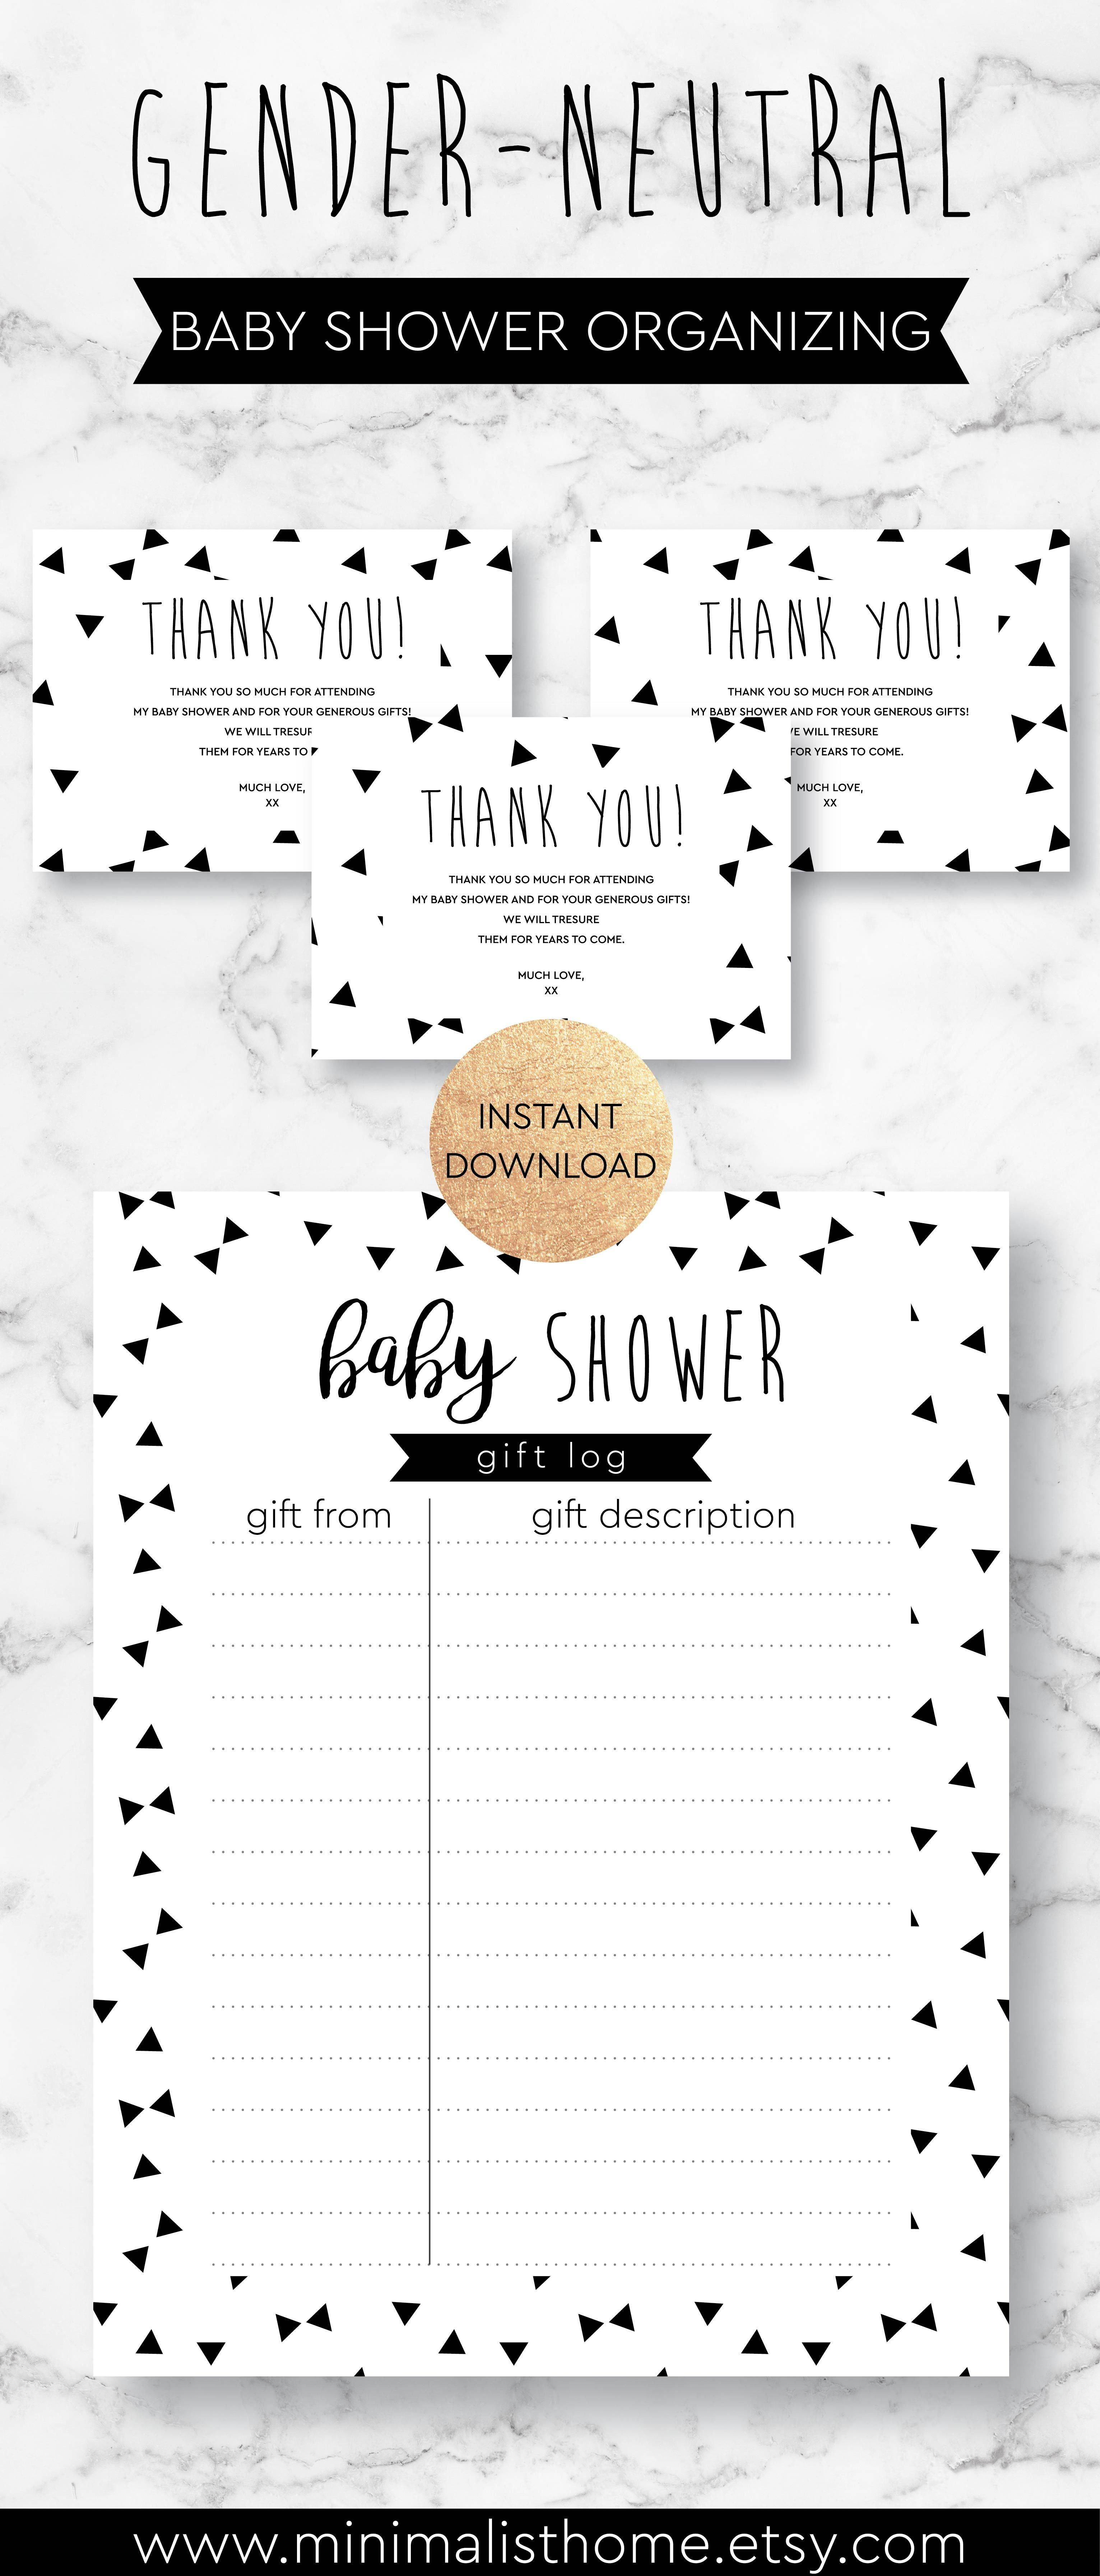 Printable Baby Shower Gifts Log For Gender Neutral Baby Shower